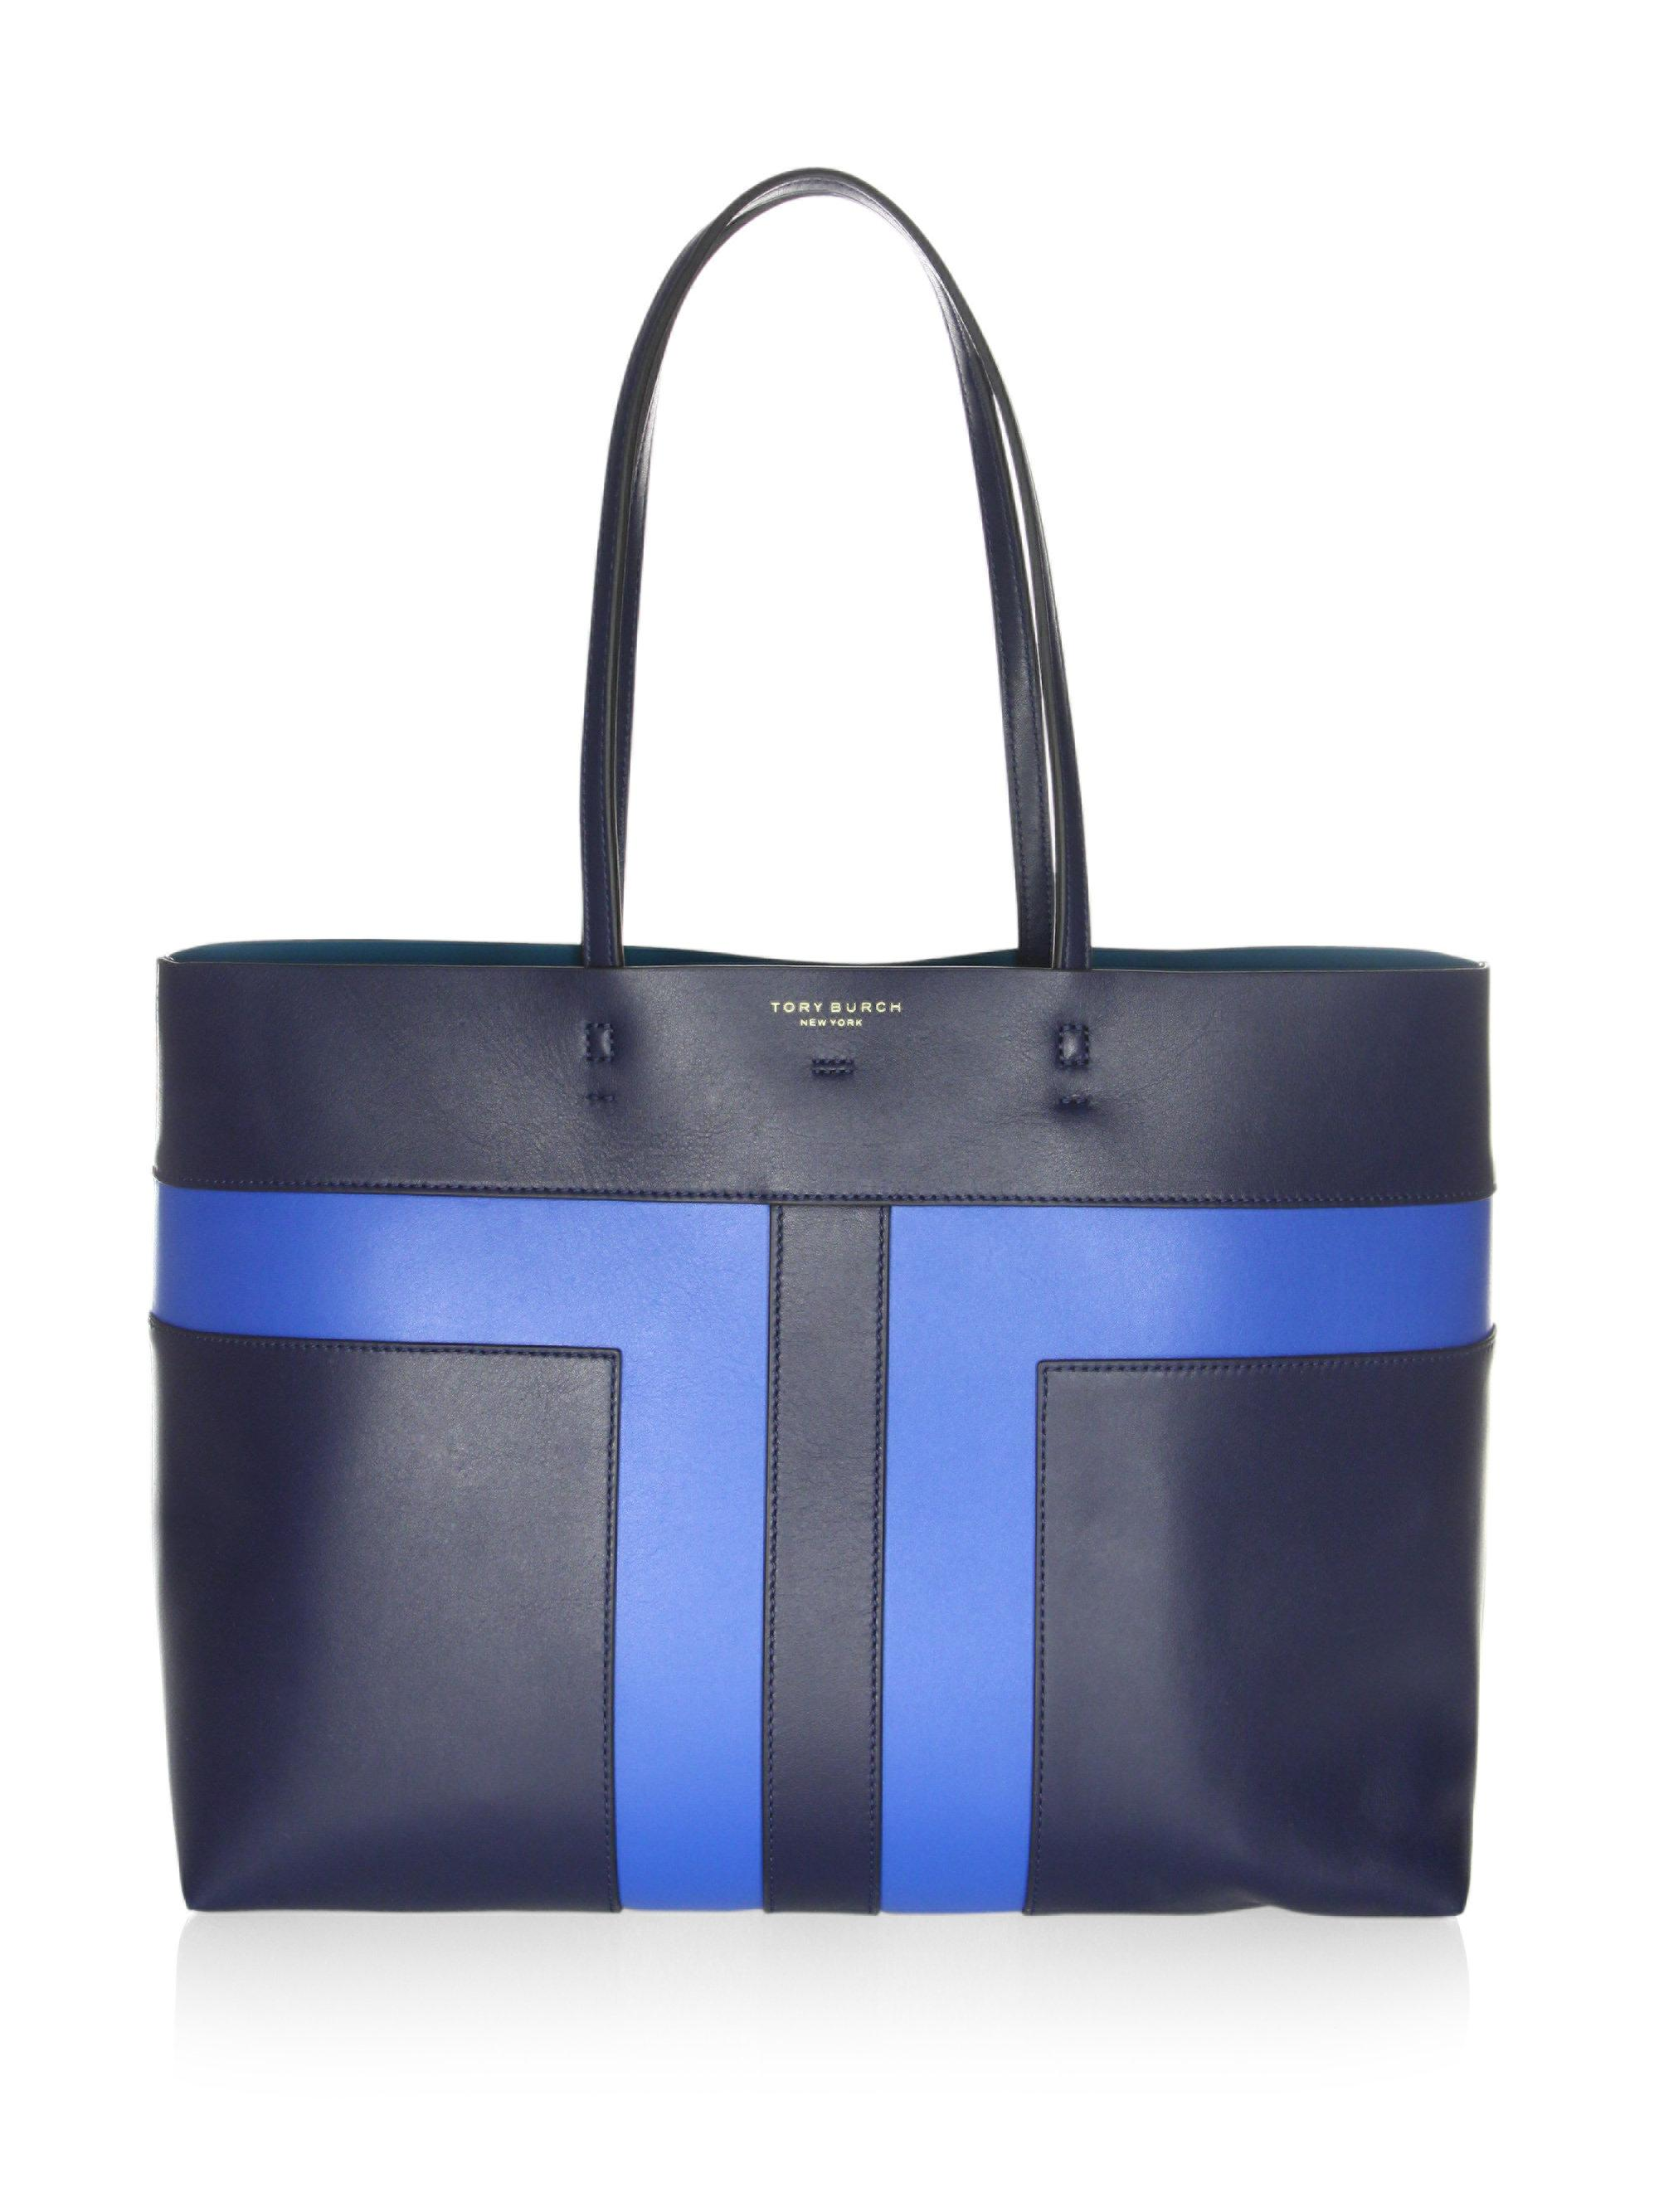 Lyst - Tory Burch Block-t Pieced Leather Tote in Blue b634fde627e86